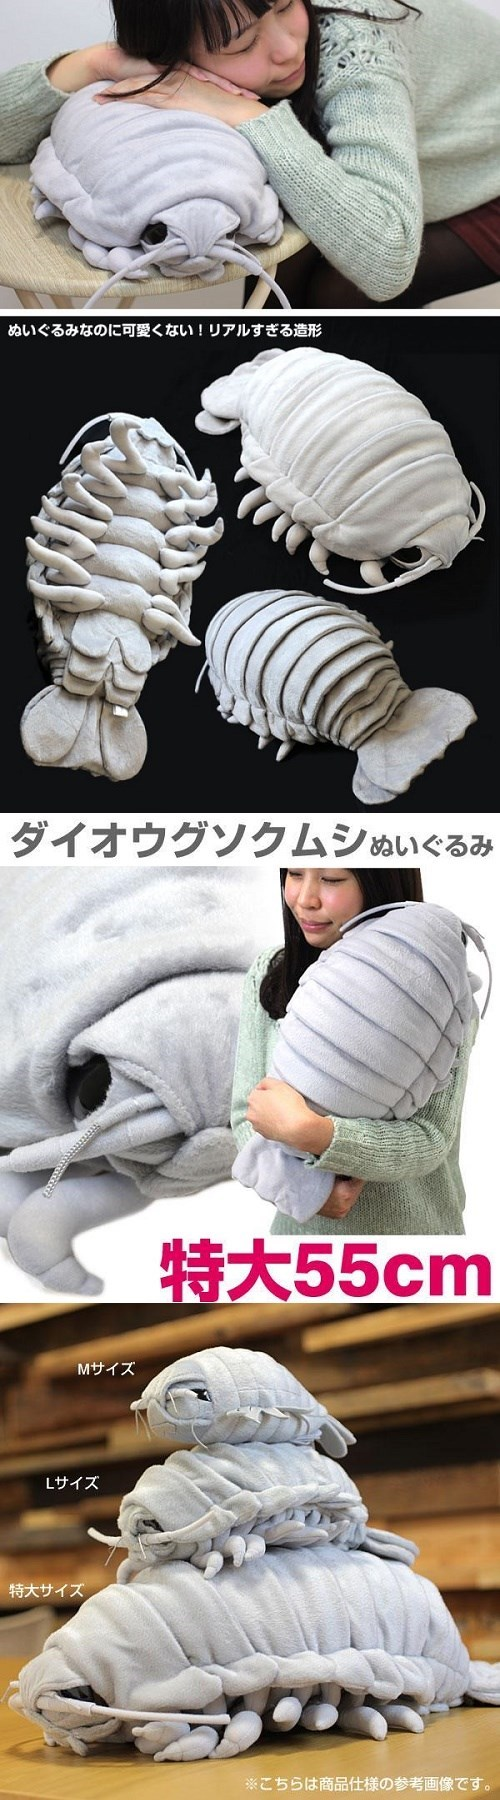 wtf,pillows,Japan,giant isopod